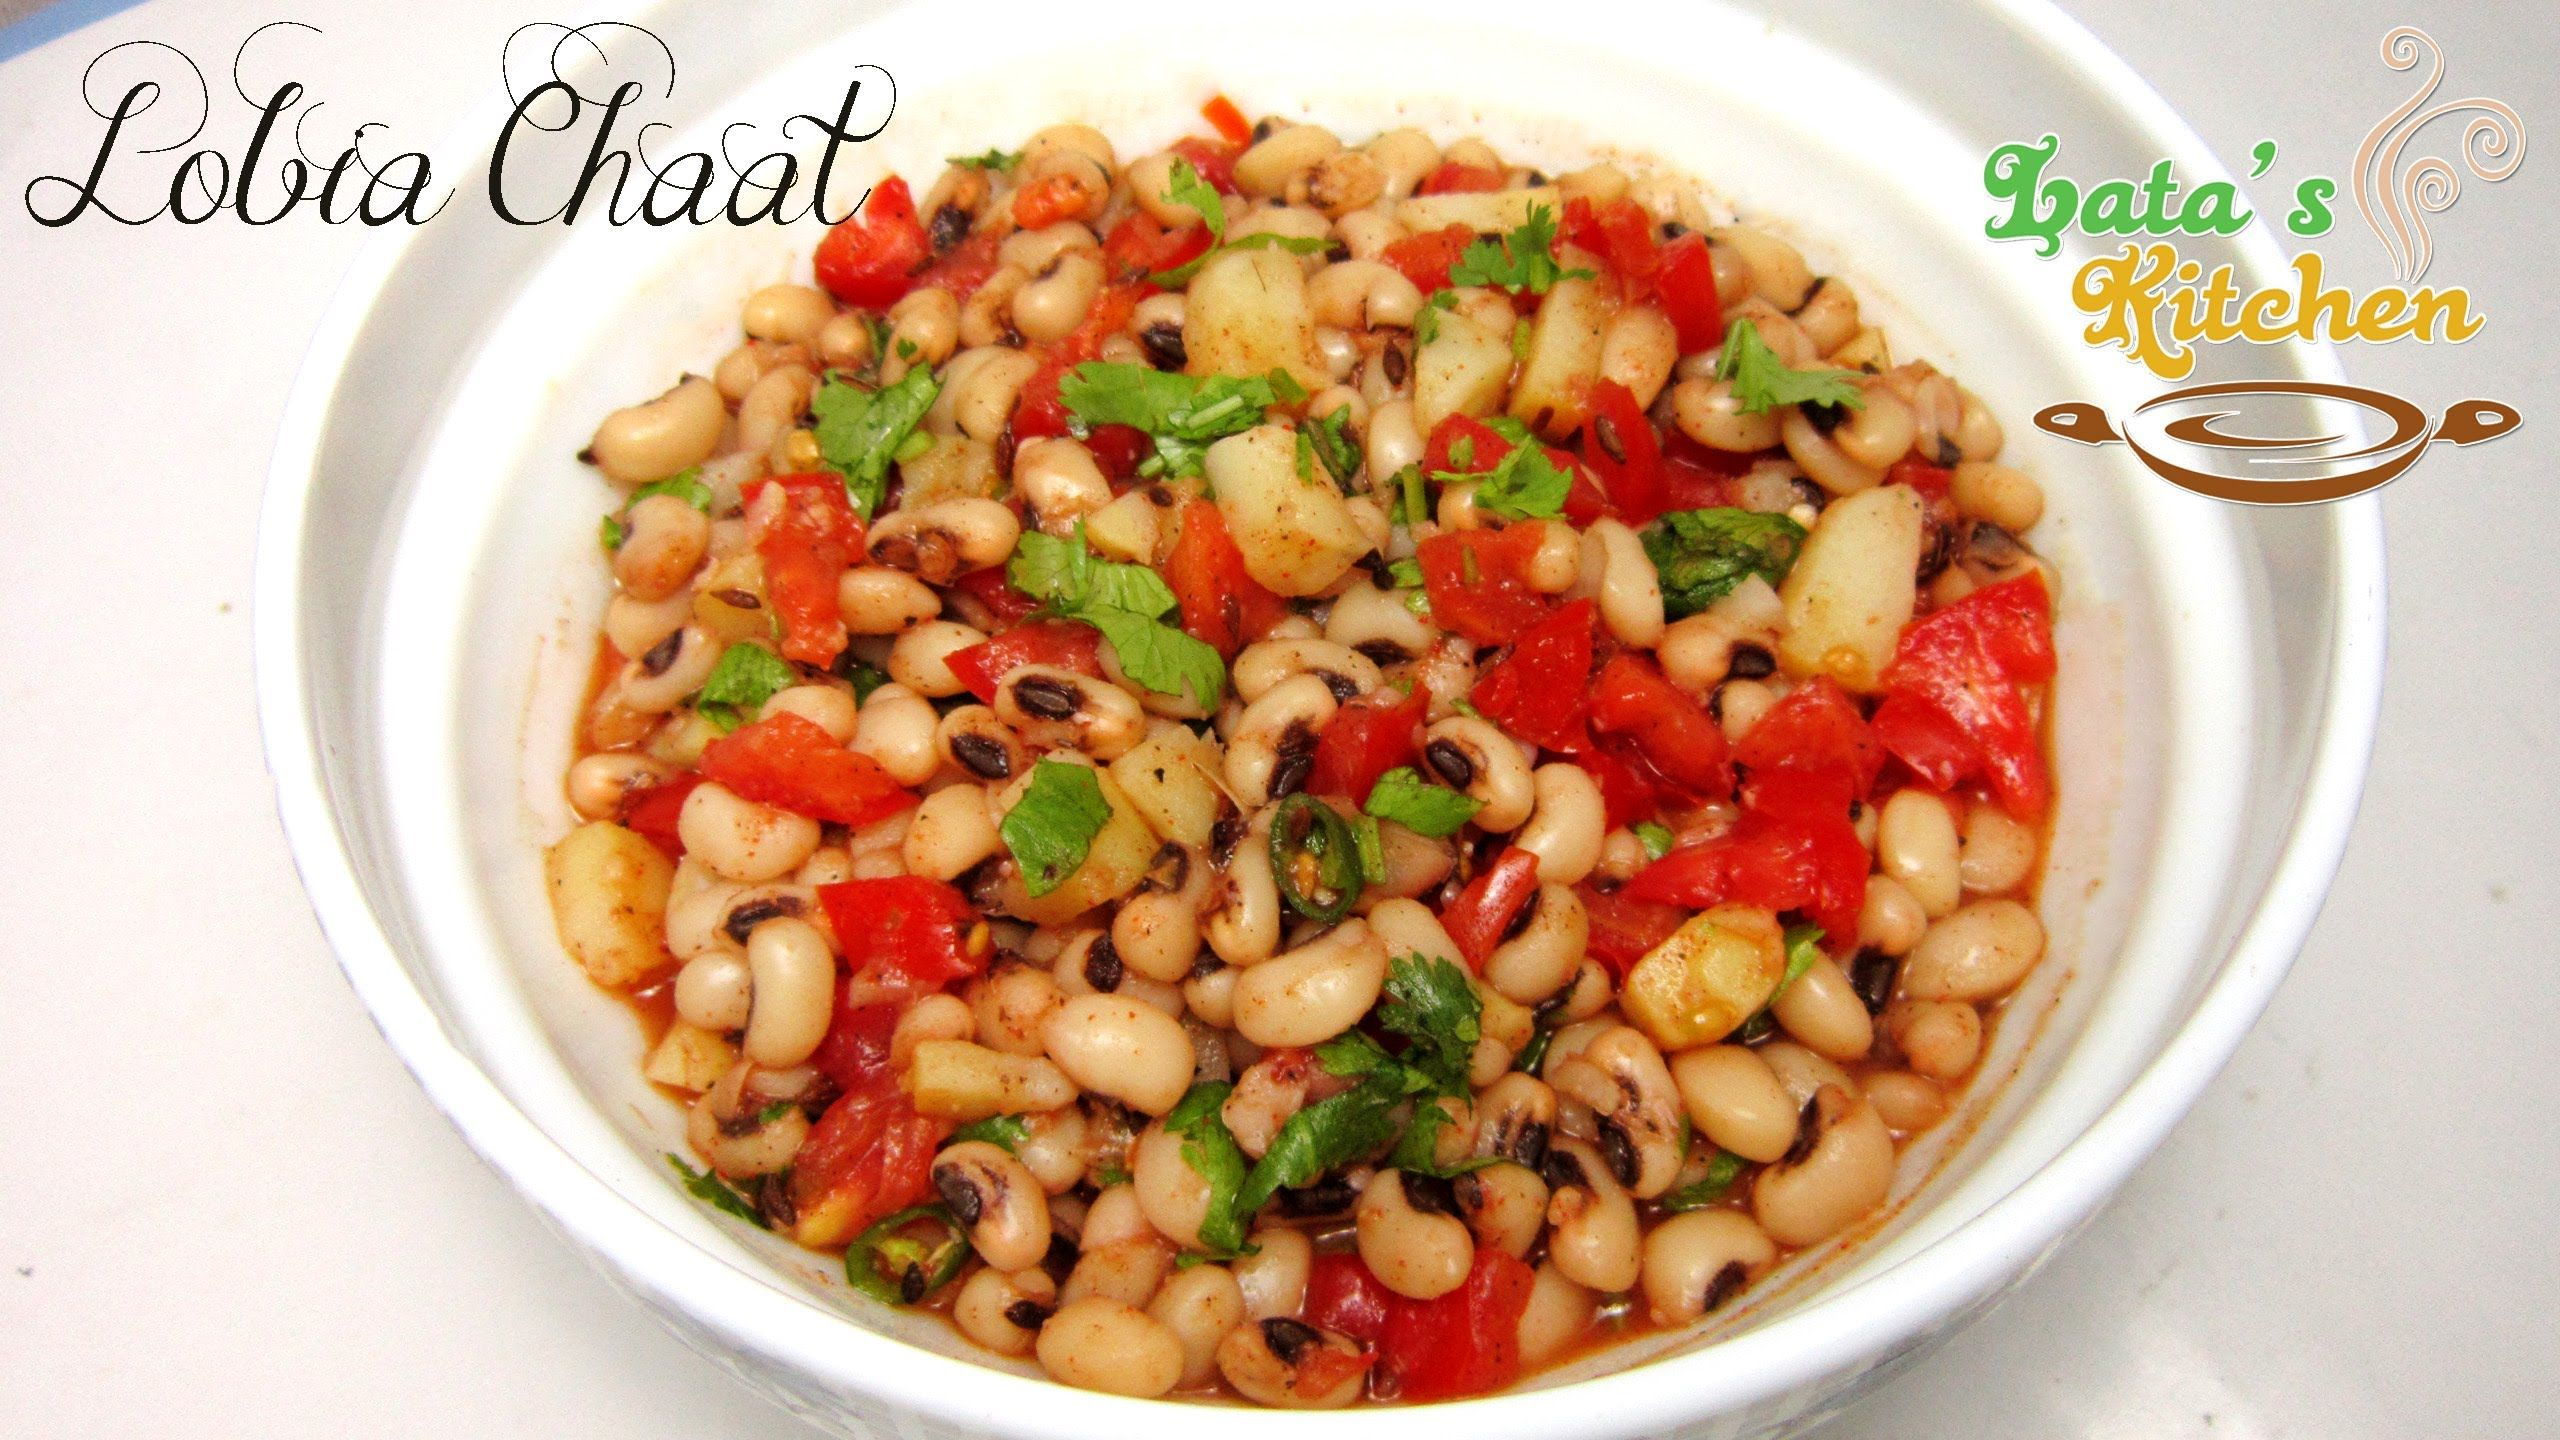 Lobia chaat is a tasty and healthy dish prepared with black eyed lobia chaat recipe video indian vegetarian salad recipe in hindi latas kitchen forumfinder Choice Image